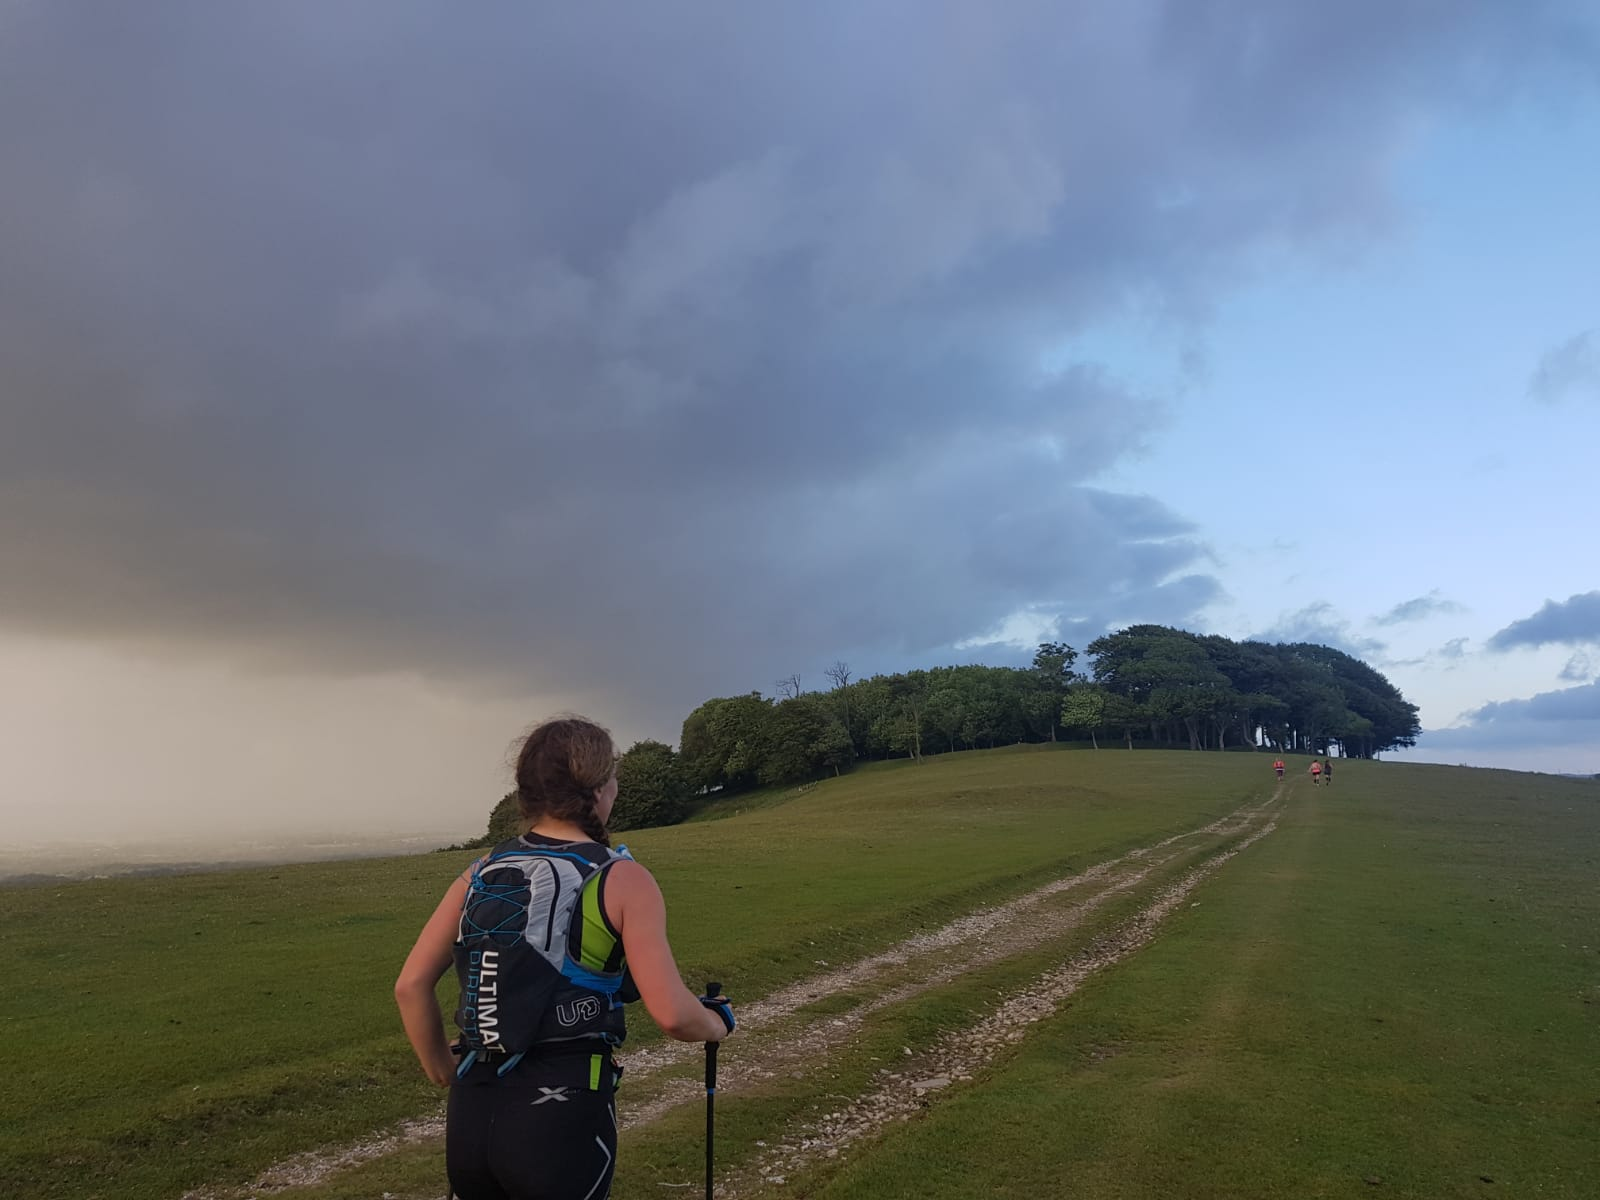 Rosanna walks towards sunset on the SDW100 2019